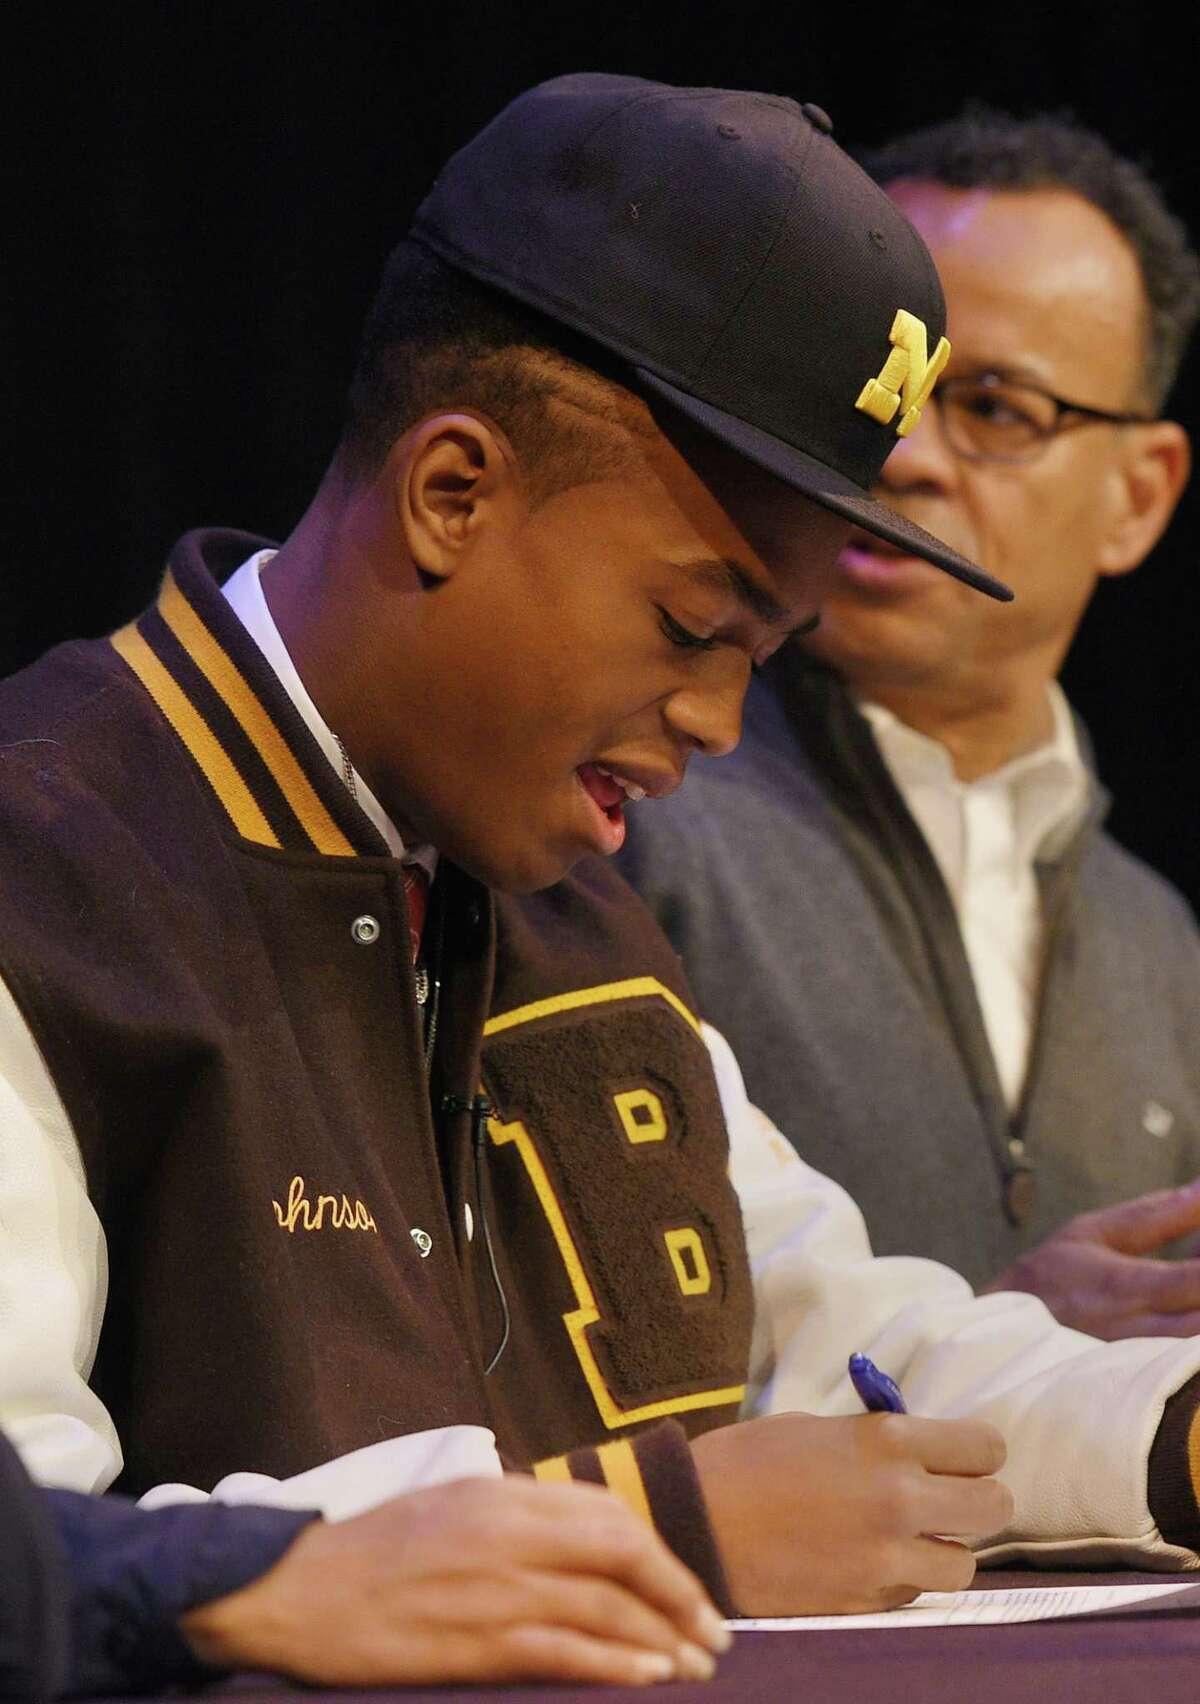 Brunswick senior wide receiver Cornelius Johnson, of Greenwich, signs his letter of intent to play football at the University of Michigan beside his parents Cassandra Tribble, M.D. and Claude Johnson, and brother Carnegie Johnson, 14, at Brunswick School in Greenwich, Conn. Wednesday, Dec. 19, 2018. Johnson is a 6-foot-3, 198-pound 4-star prospect who caught 50 passes for 826 yards and 12 touchdowns in his senior season.